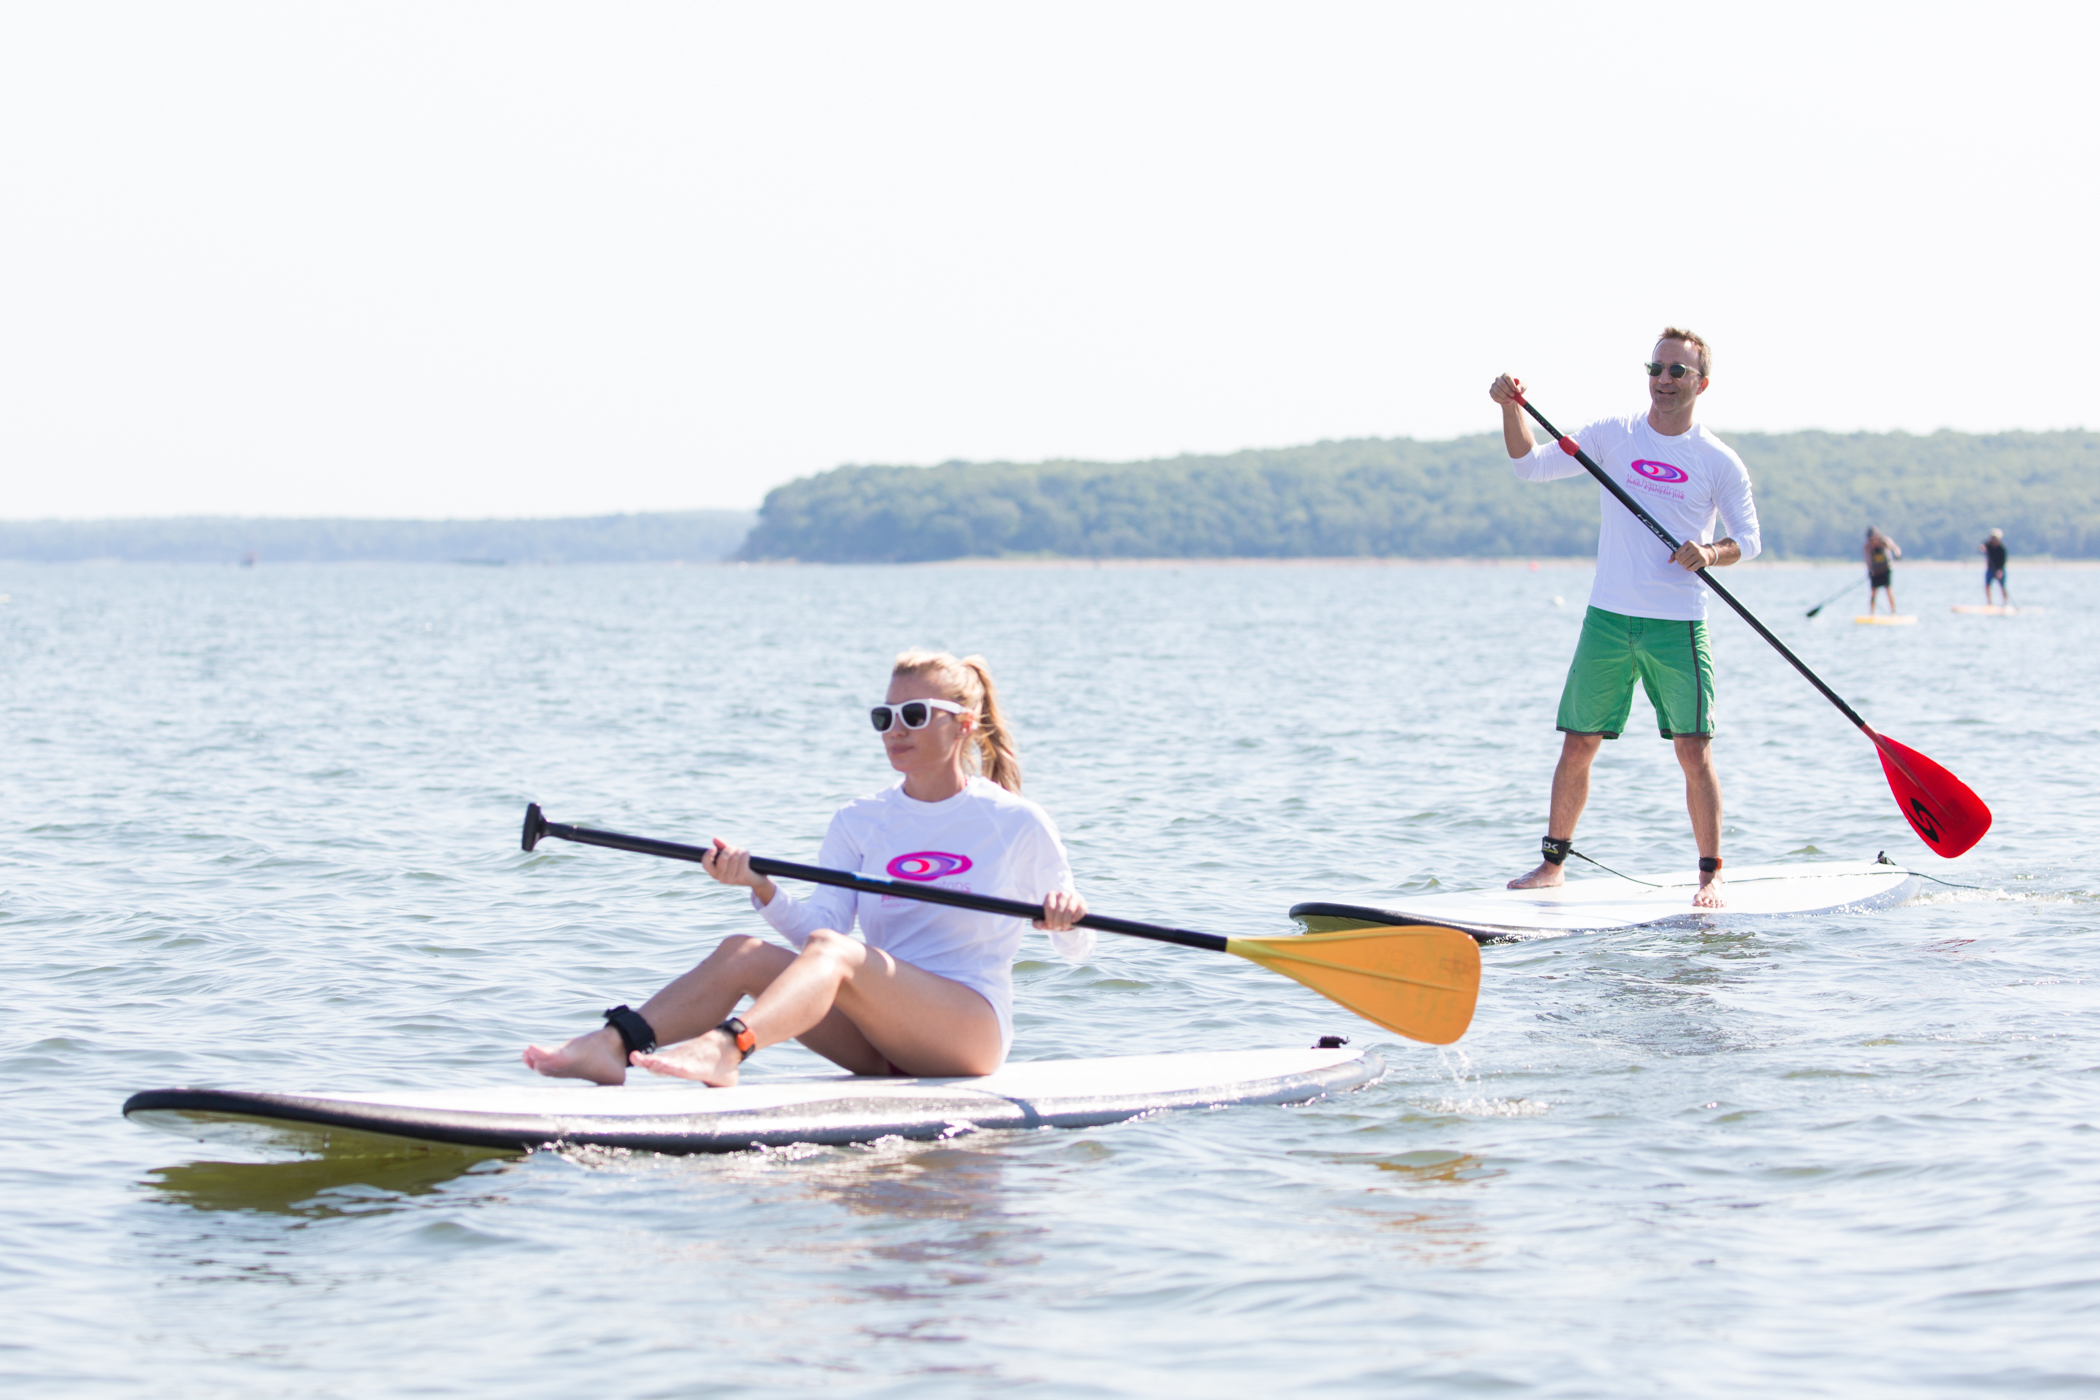 Tracy Anderson and Breckin Meyer hit the water for a great cause (credit: michael blanchard)